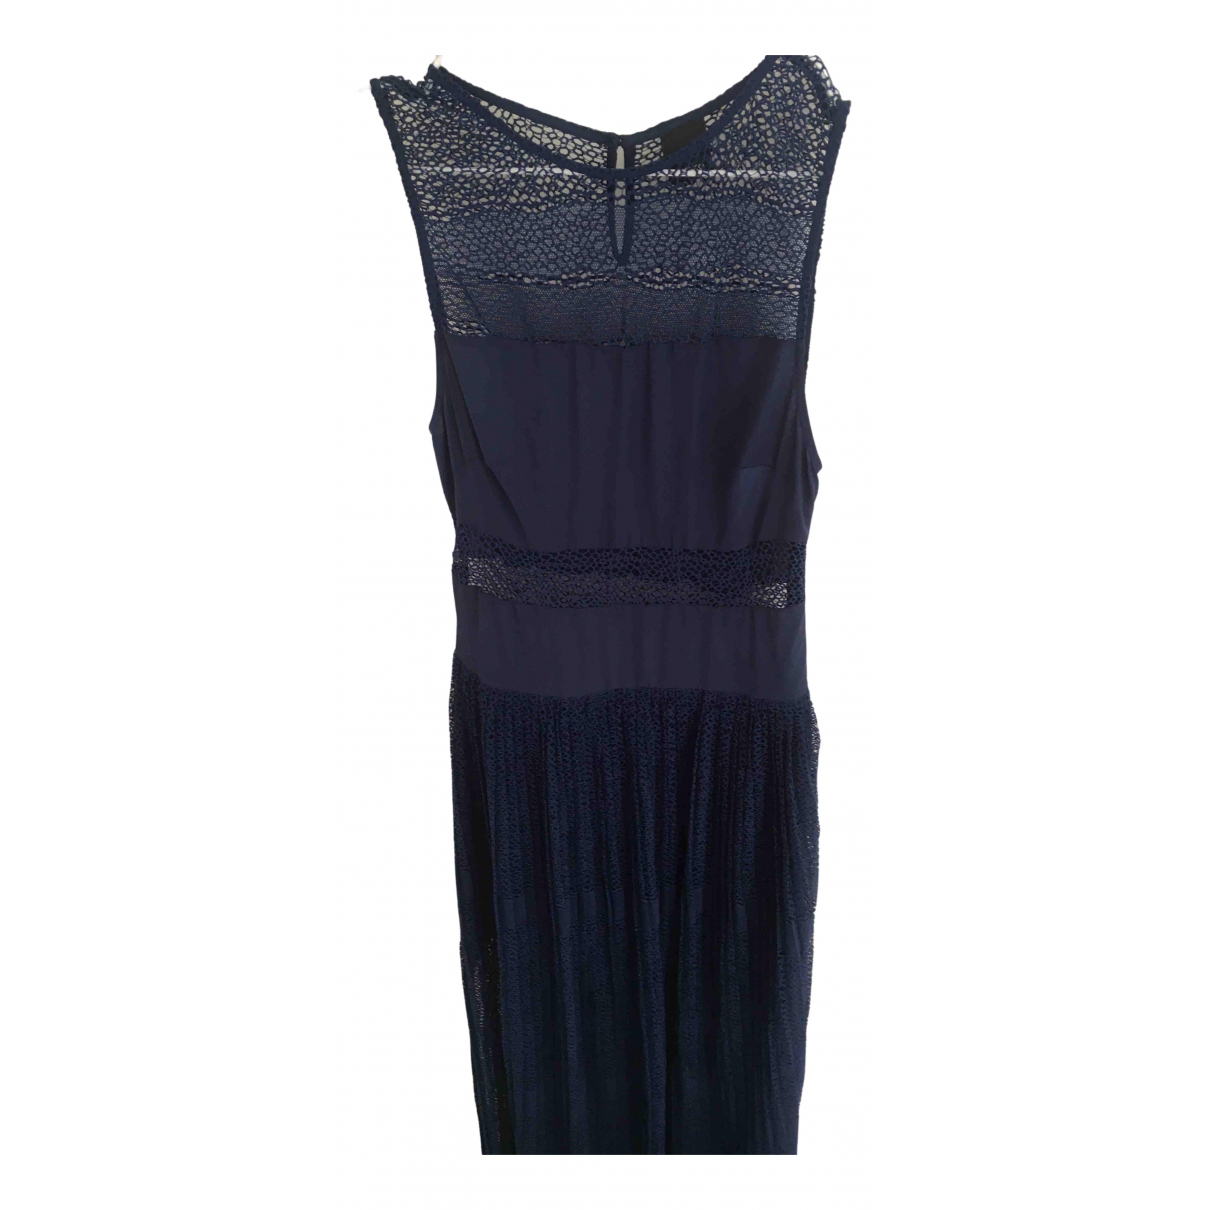 Pinko \N Blue dress for Women 36 FR